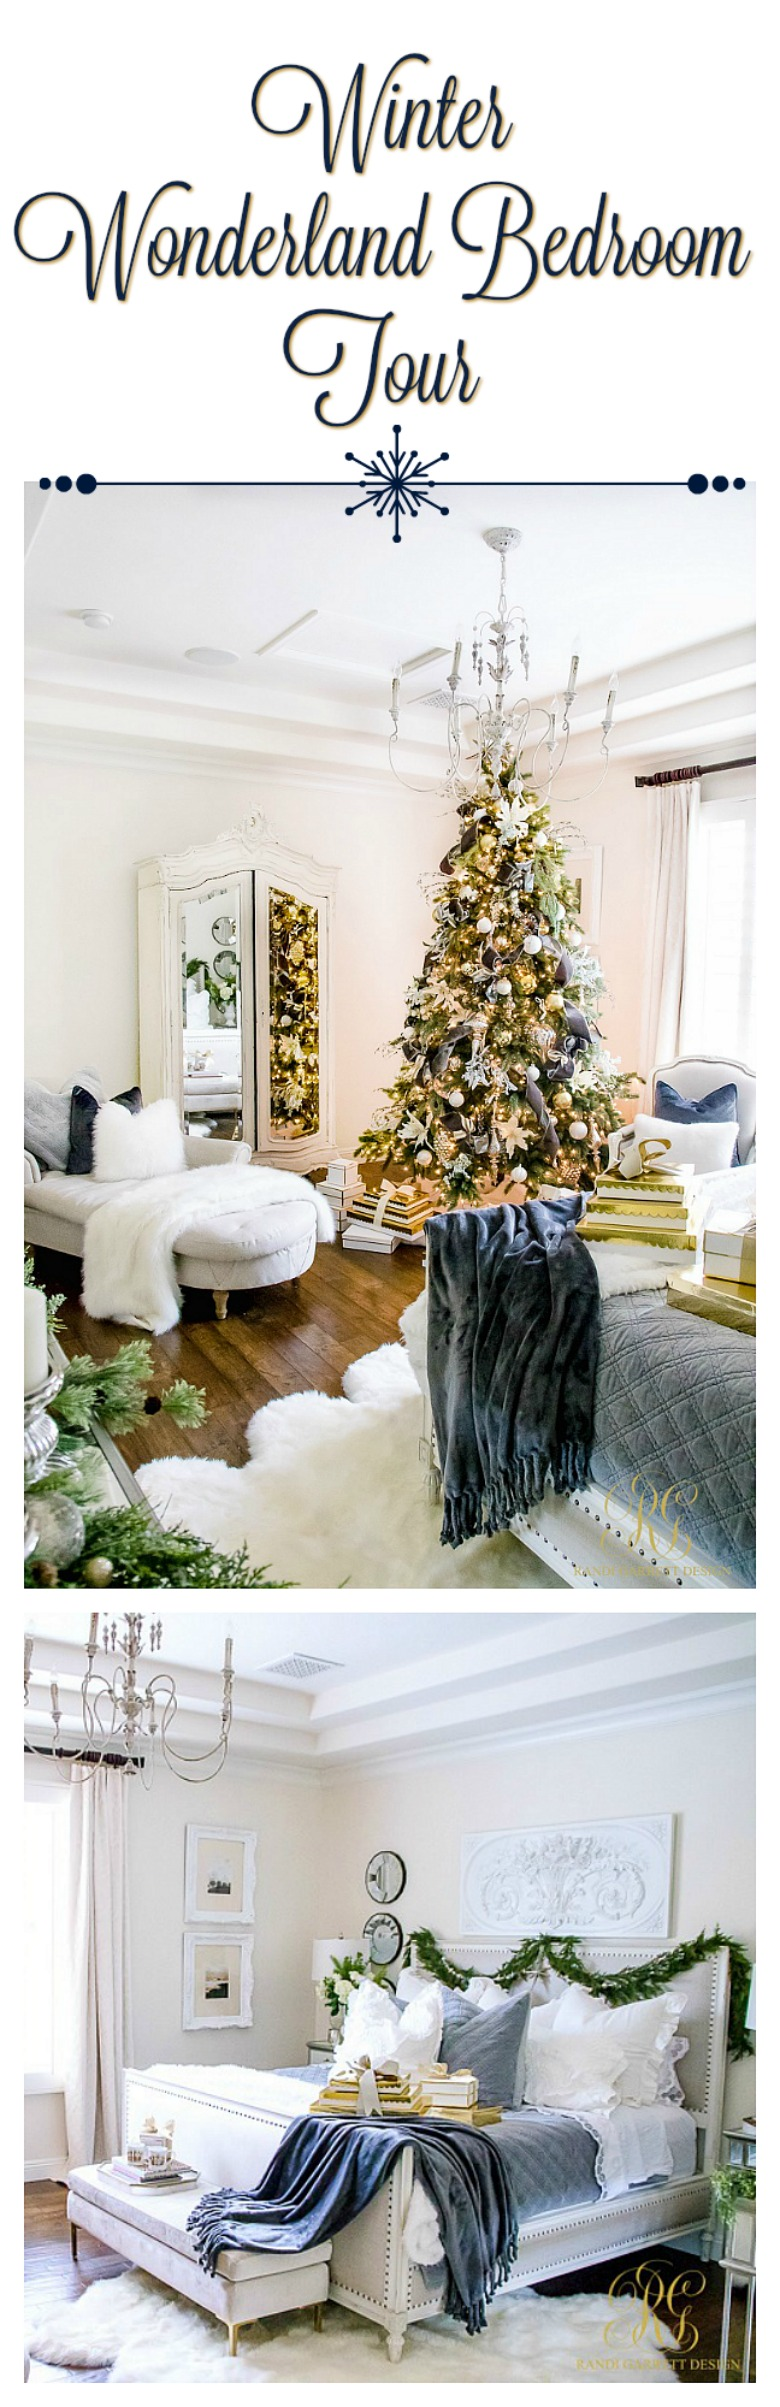 You may also like Simply Christmas Home